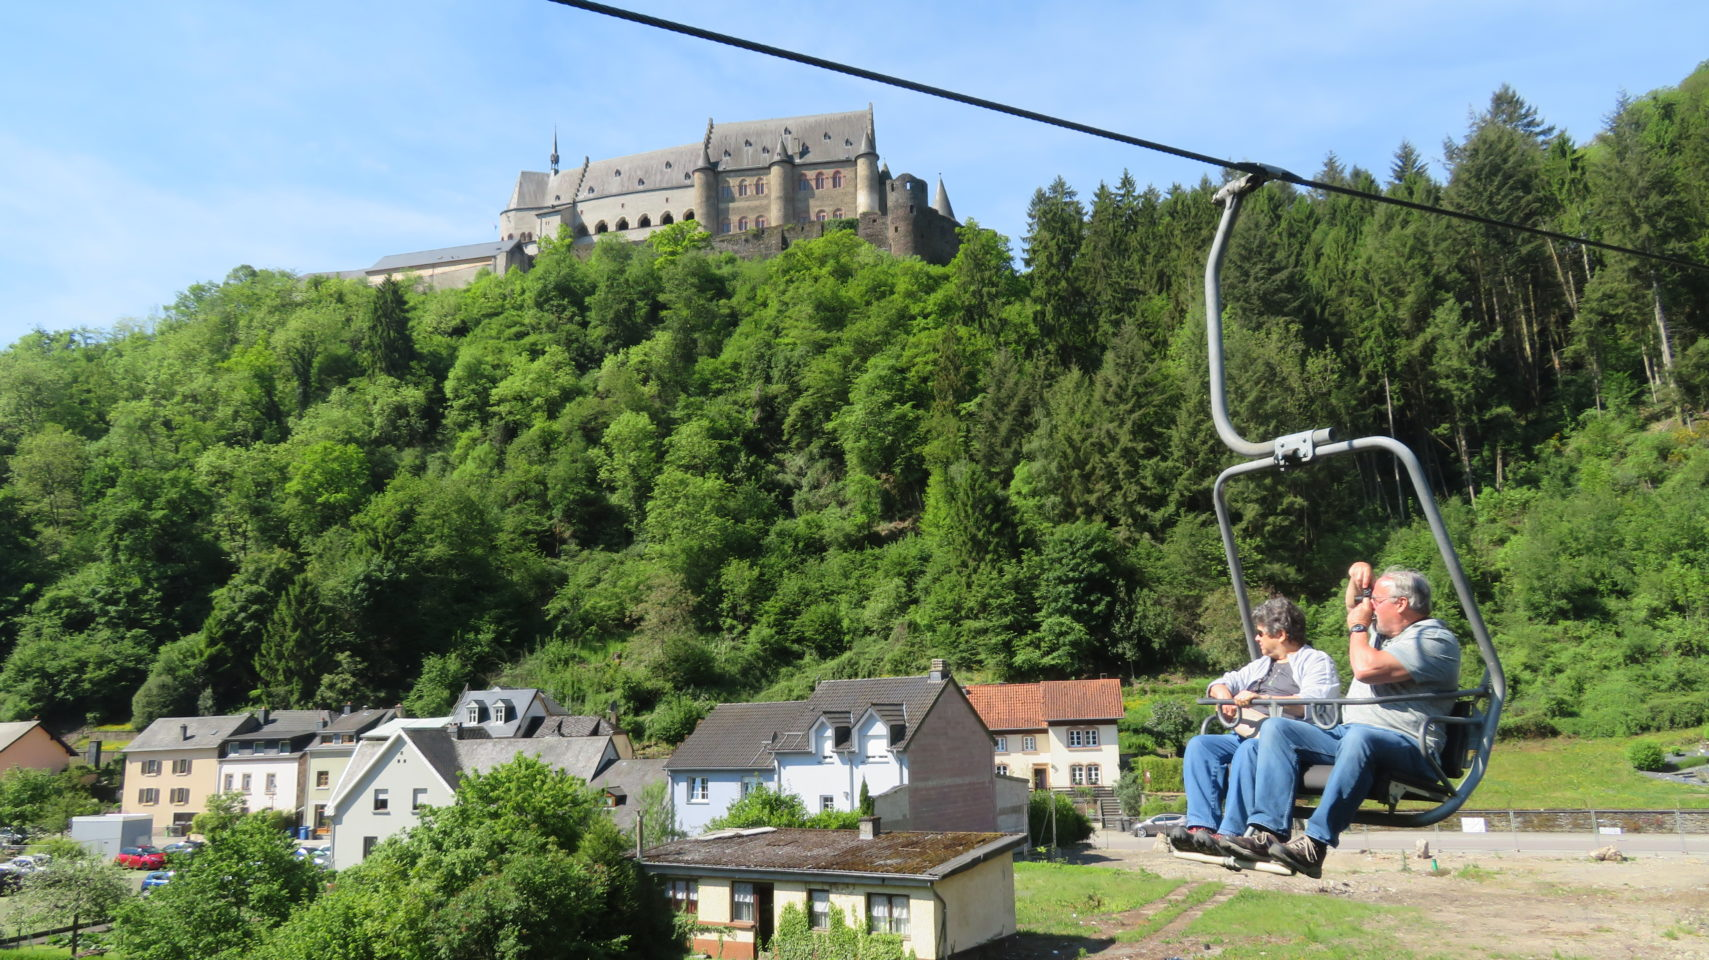 Chair Lift and Vianden Castle in Vianden, <em><strong>Luxembourg</strong></em>